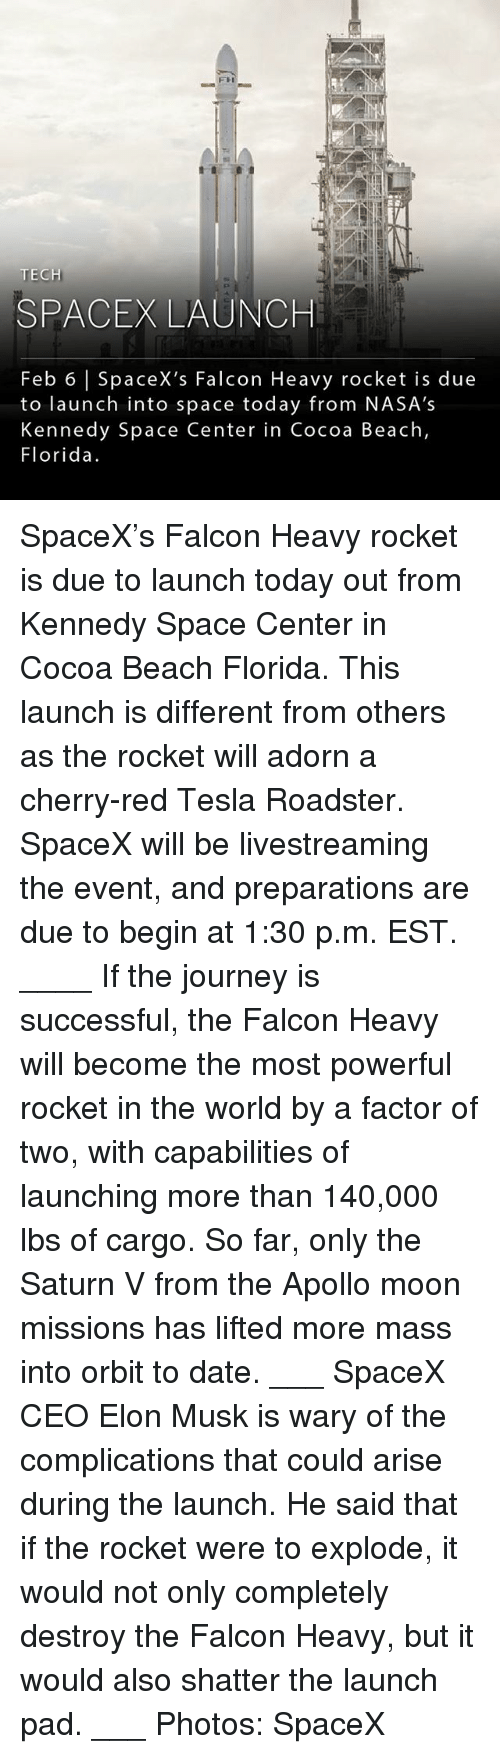 Journey, Memes, and Apollo: FH  TECH  SPACEX LAUNCH  Feb 6 |SpaceX's Falcon Heavy rocket is due  to launch into space today from NASA's  Kennedy Space Center in Cocoa Beach,  Florida. SpaceX's Falcon Heavy rocket is due to launch today out from Kennedy Space Center in Cocoa Beach Florida. This launch is different from others as the rocket will adorn a cherry-red Tesla Roadster. SpaceX will be livestreaming the event, and preparations are due to begin at 1:30 p.m. EST. ____ If the journey is successful, the Falcon Heavy will become the most powerful rocket in the world by a factor of two, with capabilities of launching more than 140,000 lbs of cargo. So far, only the Saturn V from the Apollo moon missions has lifted more mass into orbit to date. ___ SpaceX CEO Elon Musk is wary of the complications that could arise during the launch. He said that if the rocket were to explode, it would not only completely destroy the Falcon Heavy, but it would also shatter the launch pad. ___ Photos: SpaceX